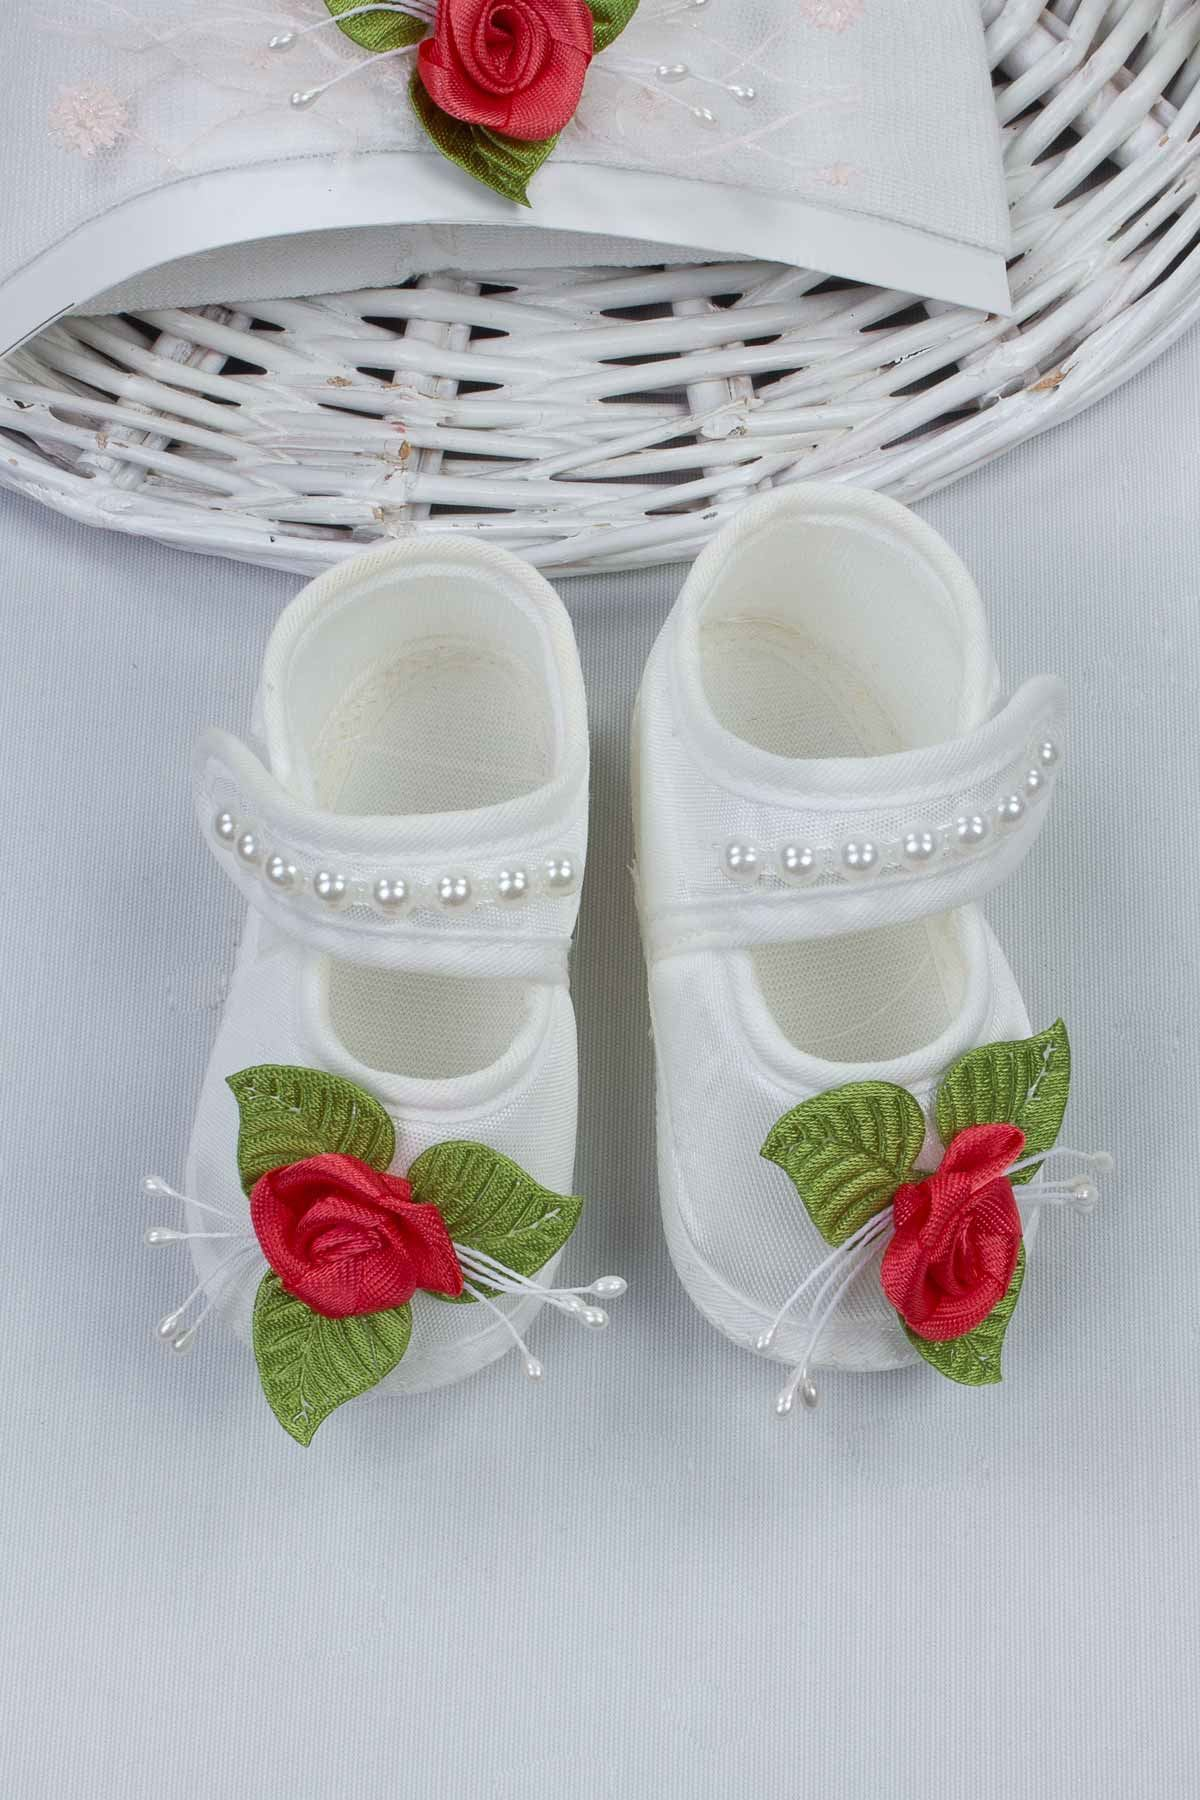 White Flower Baby Girl Newborn Gift Suit Set Girls Babies Tights Stockings Hair Bandana Shoes Fashion Style 2021 Mom Gift packag